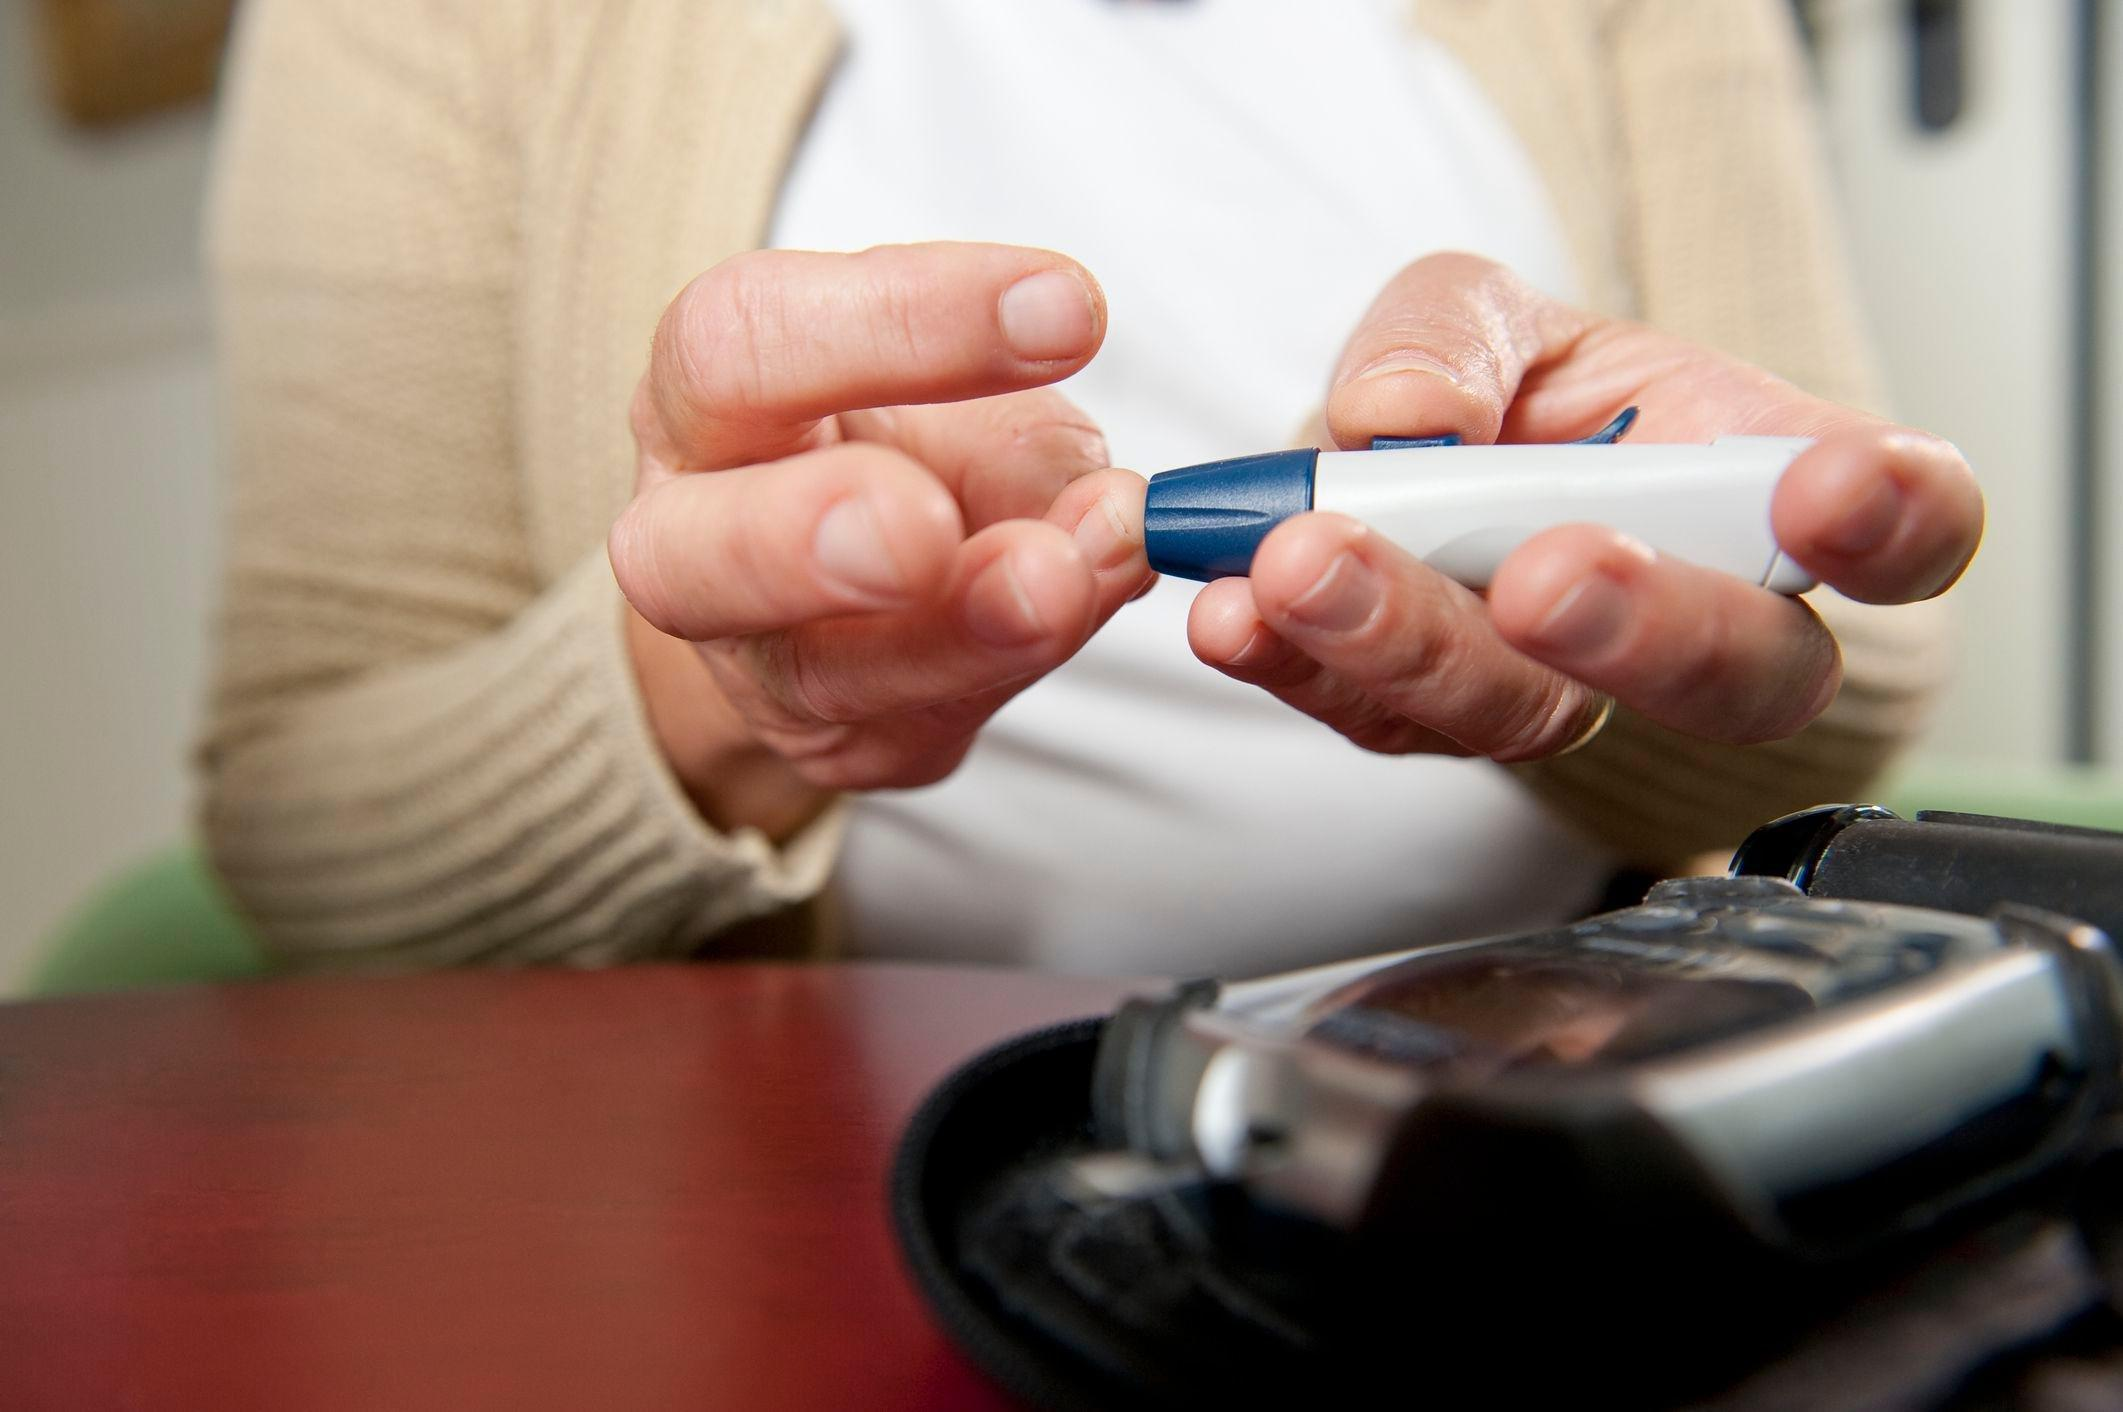 Diabetes Supplies To Have When You Leave Home